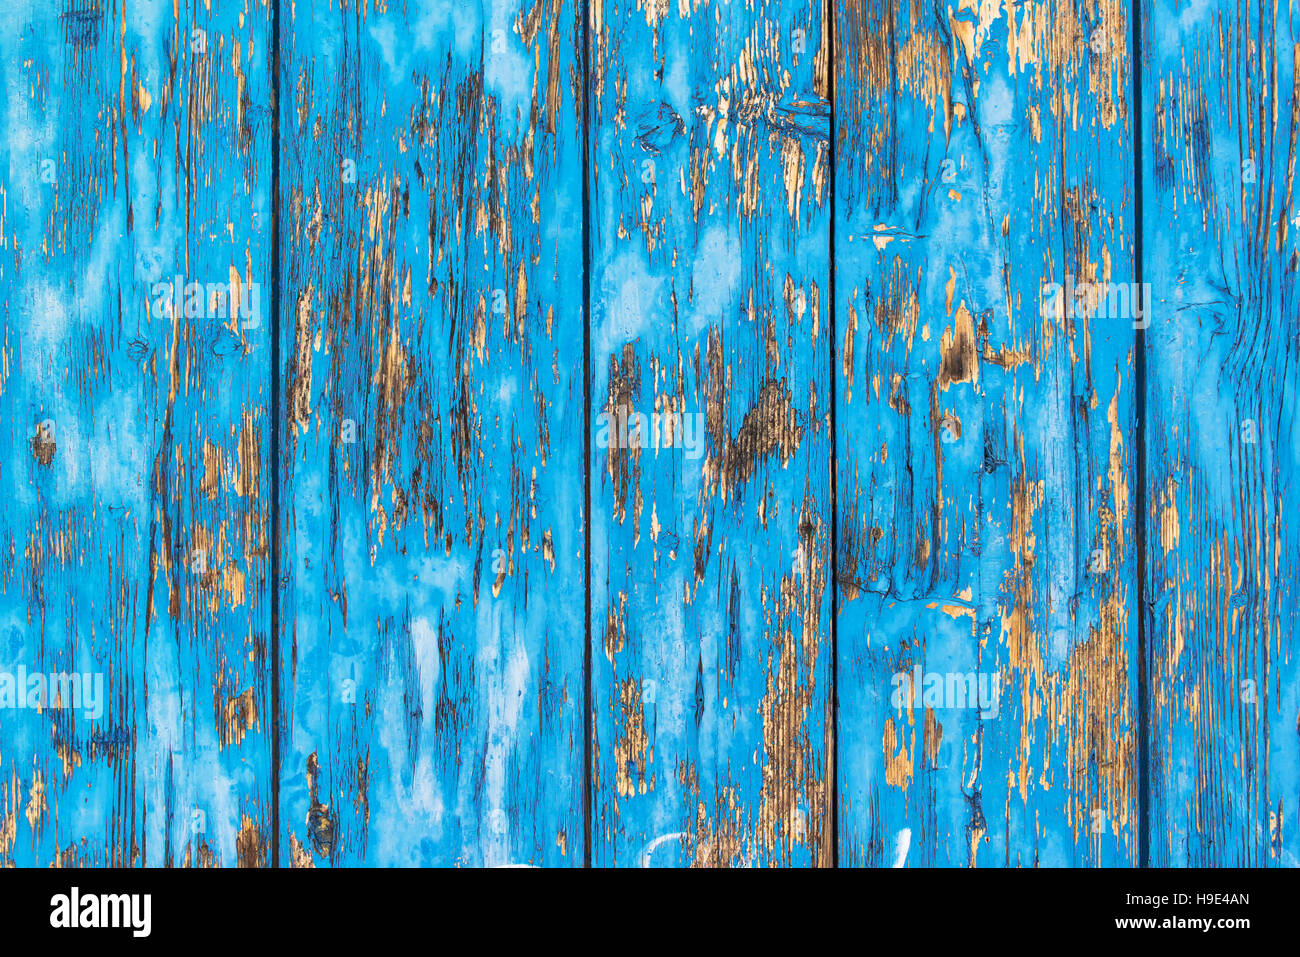 Background of rustic planks with blue paint peel off the textured surface - Stock Image